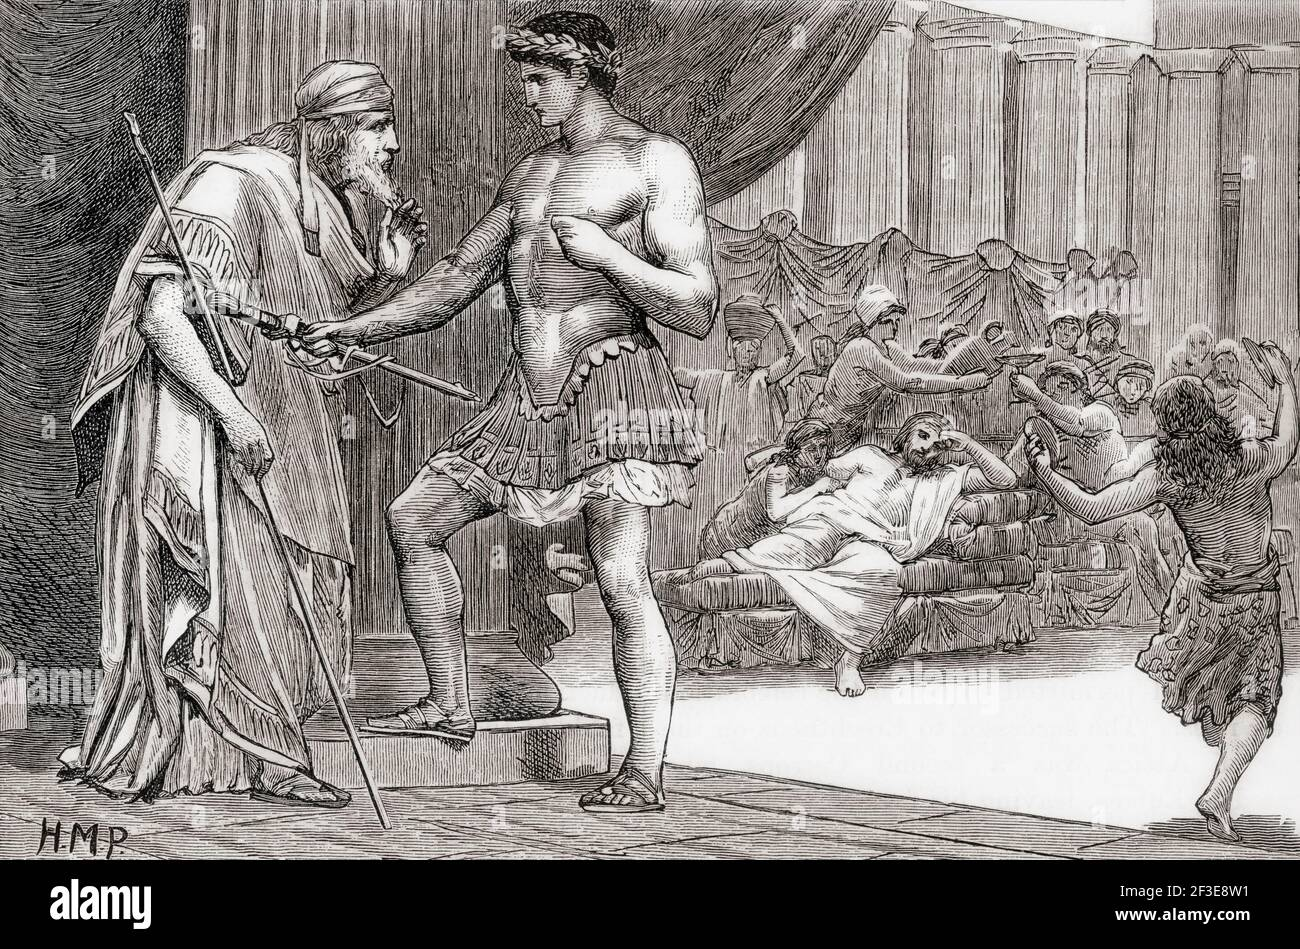 Theseus recognized by his father Aegeus.  Theseus, mythical king and founder-hero of Athens.  Aegeus also spelled Aegeas, in Greek mythology one of the kings of Athens.  From Cassell's Universal History, published 1888. Stock Photo